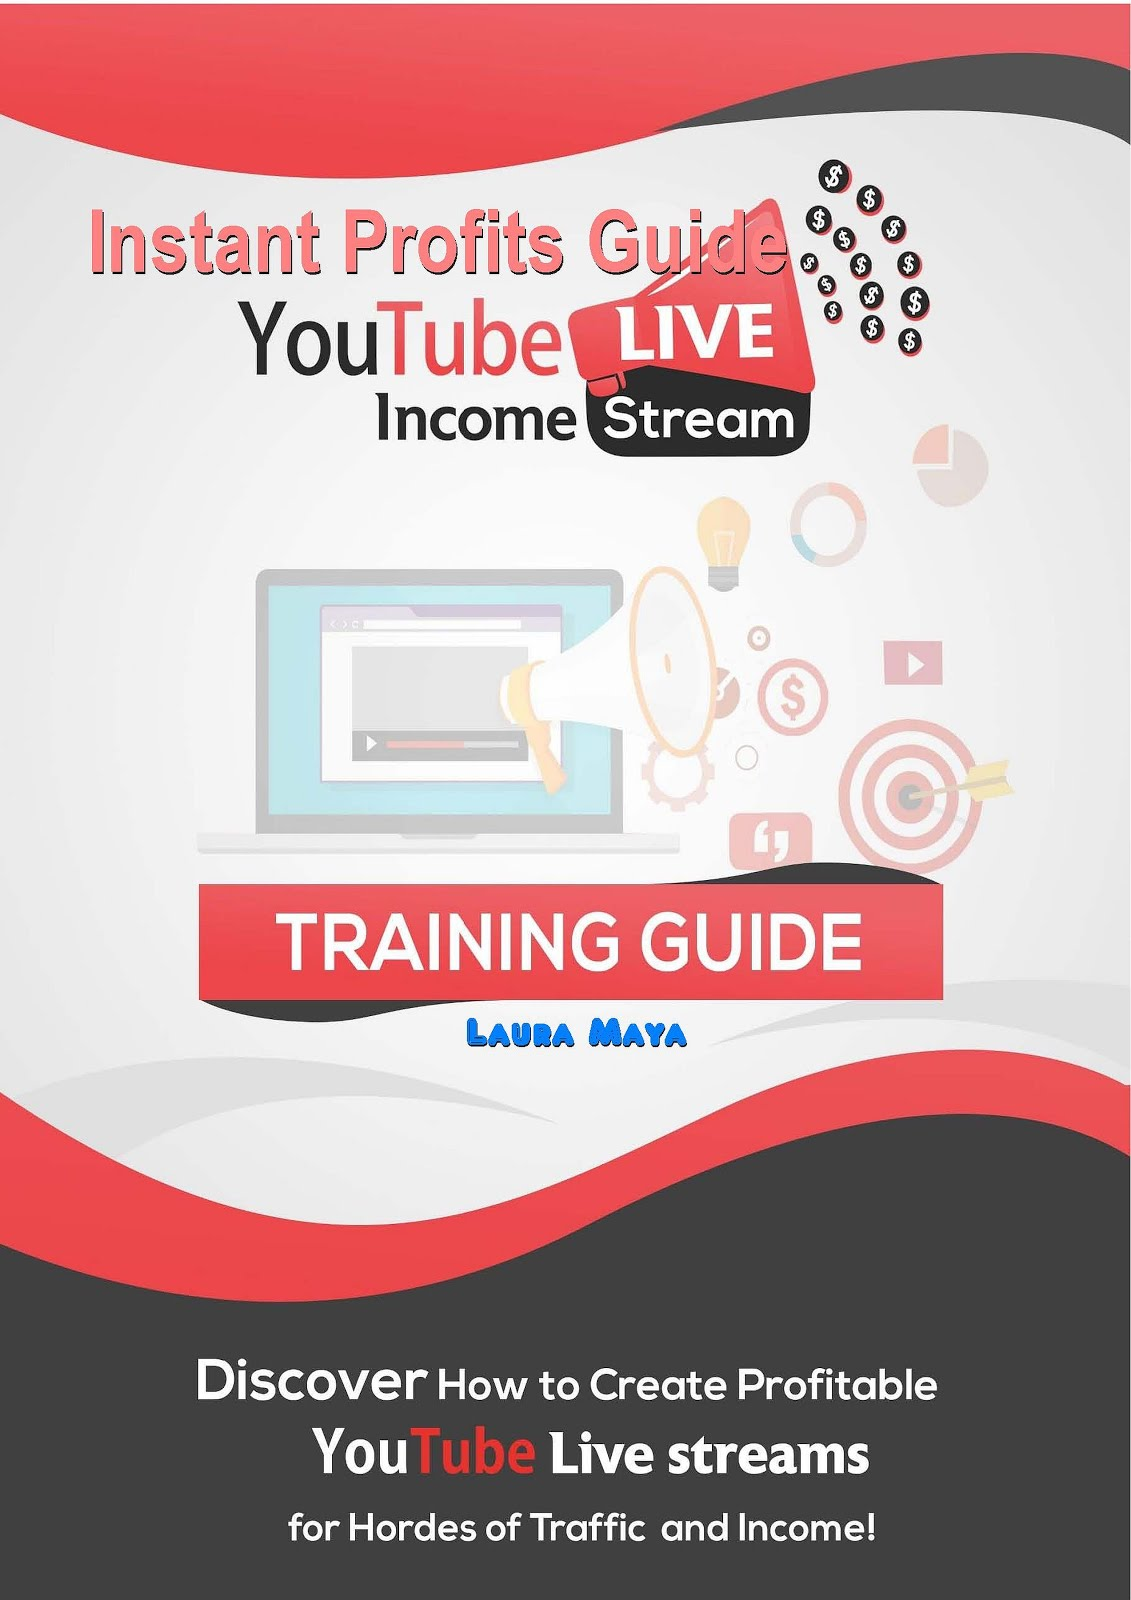 Instant Profits Guide YOUTUBE LIVE